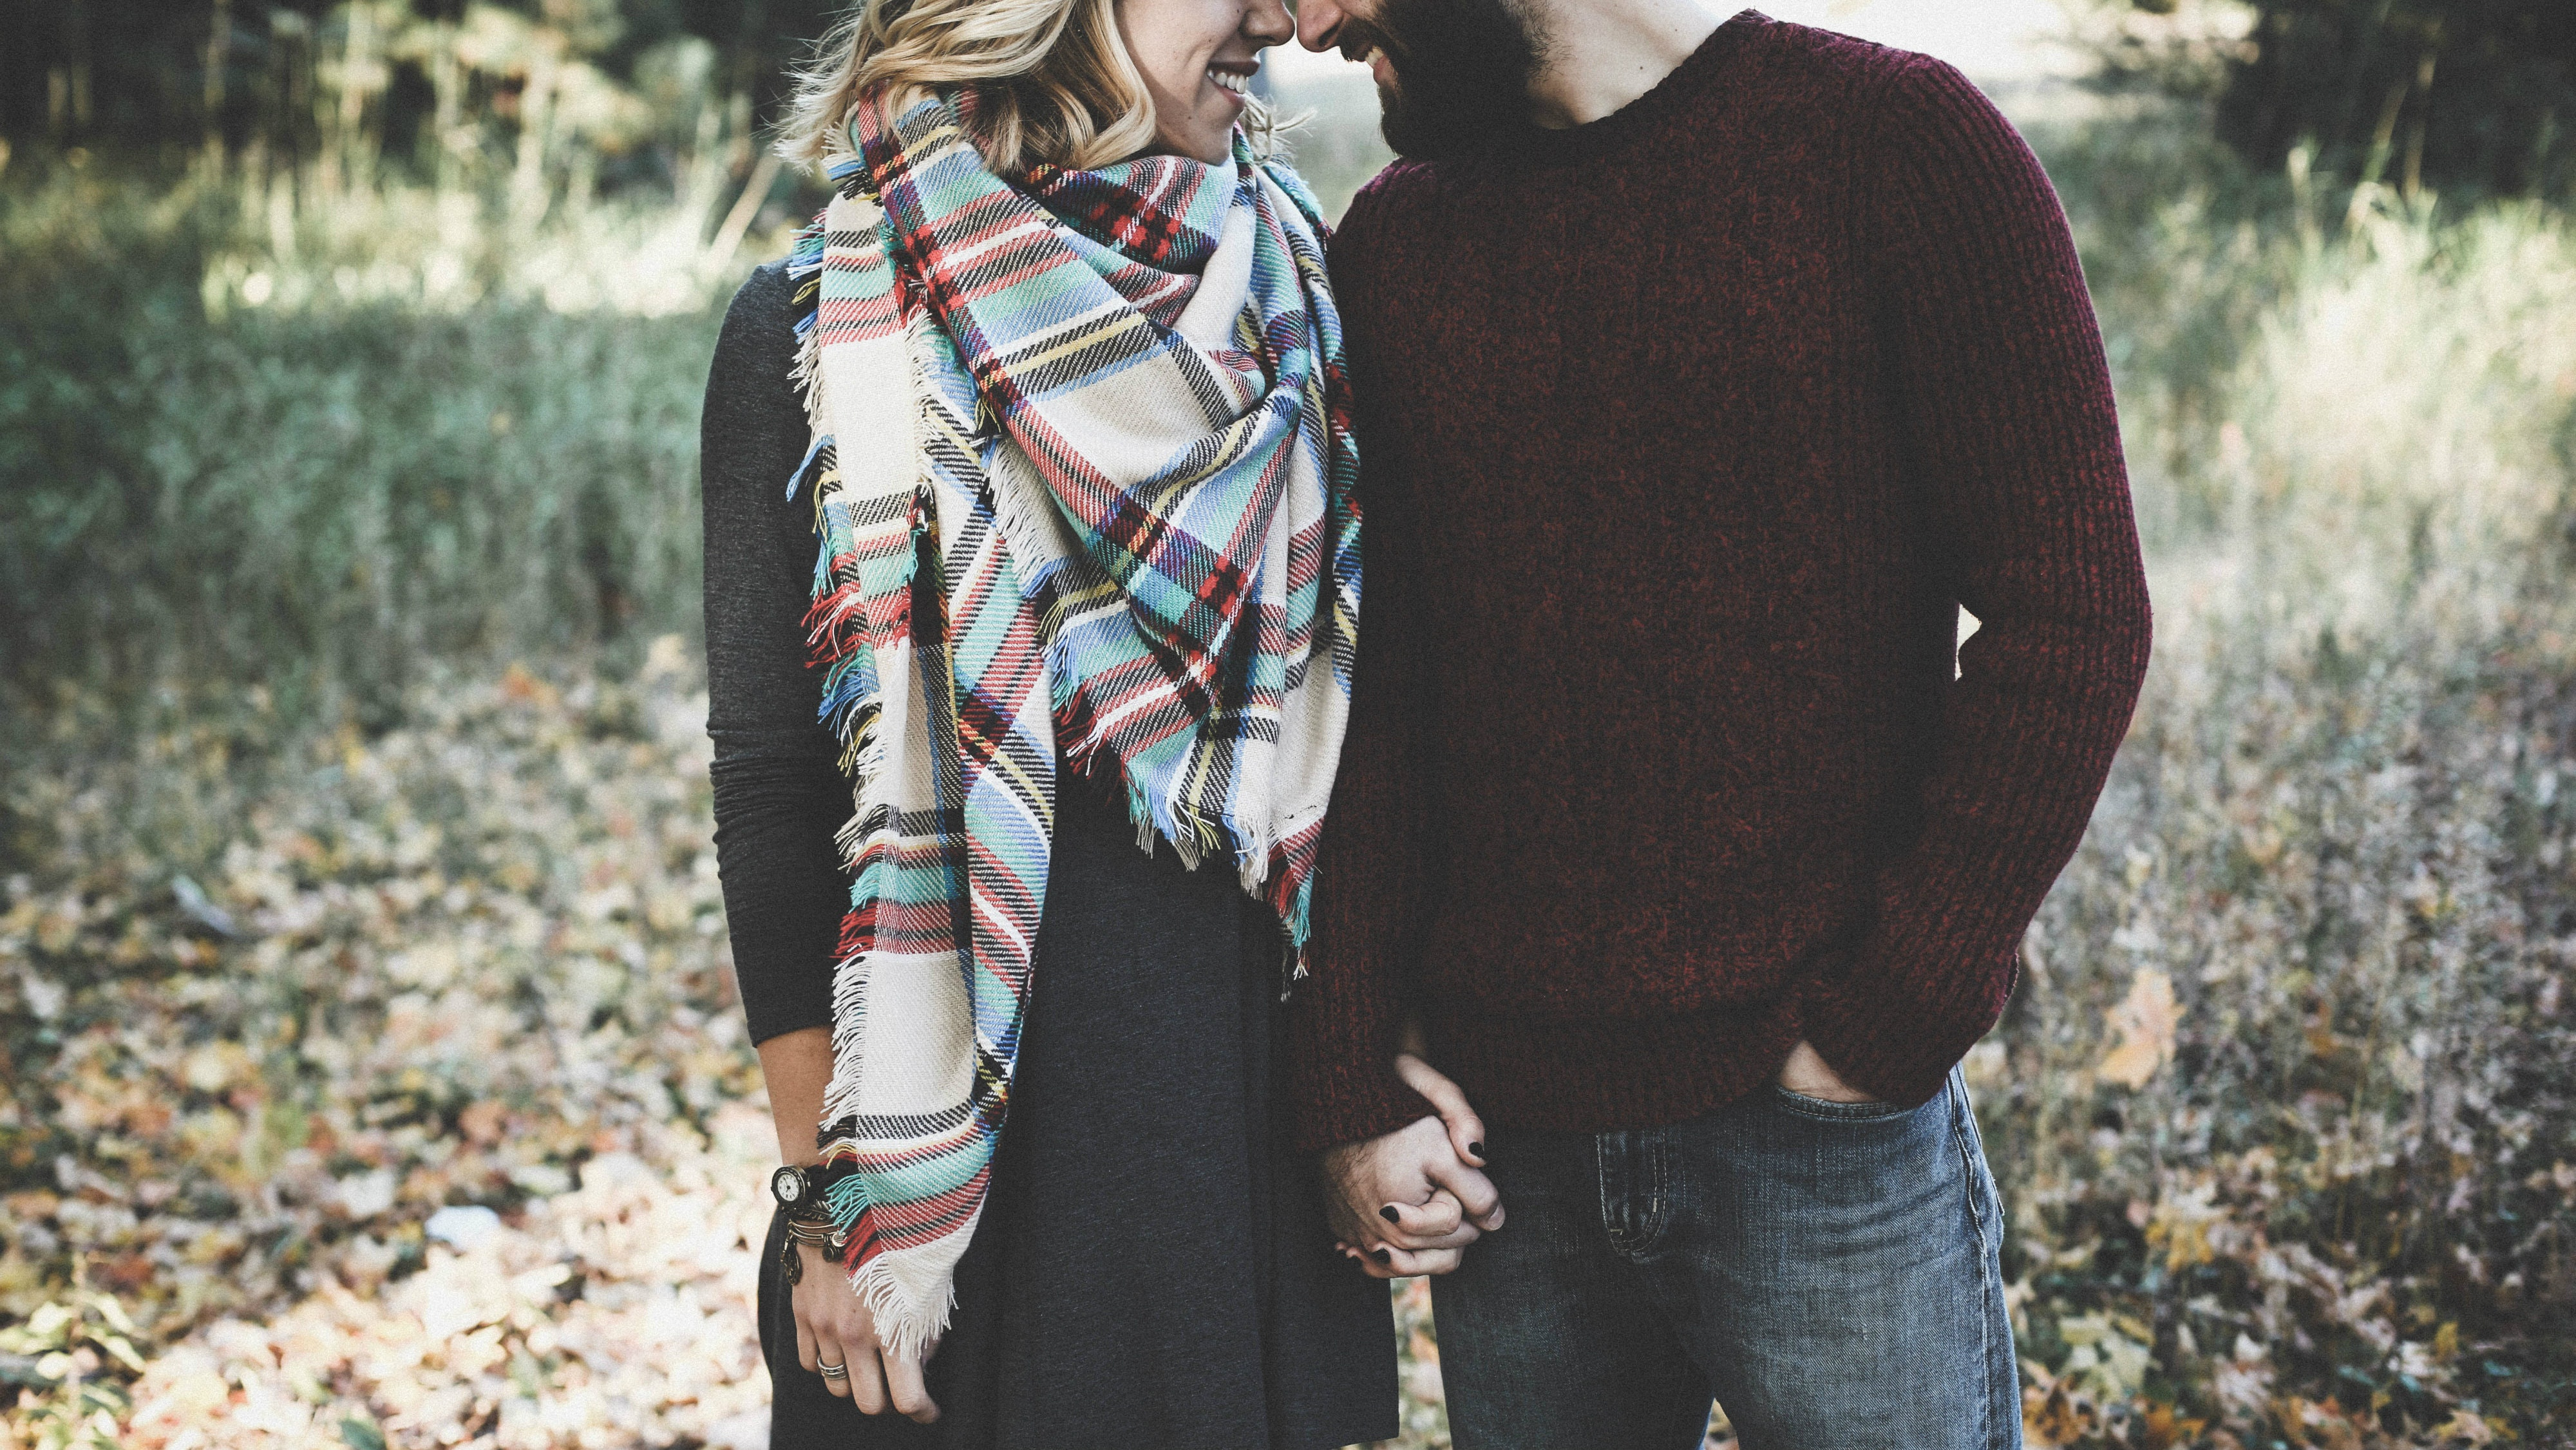 Hookup or courtship which is biblical